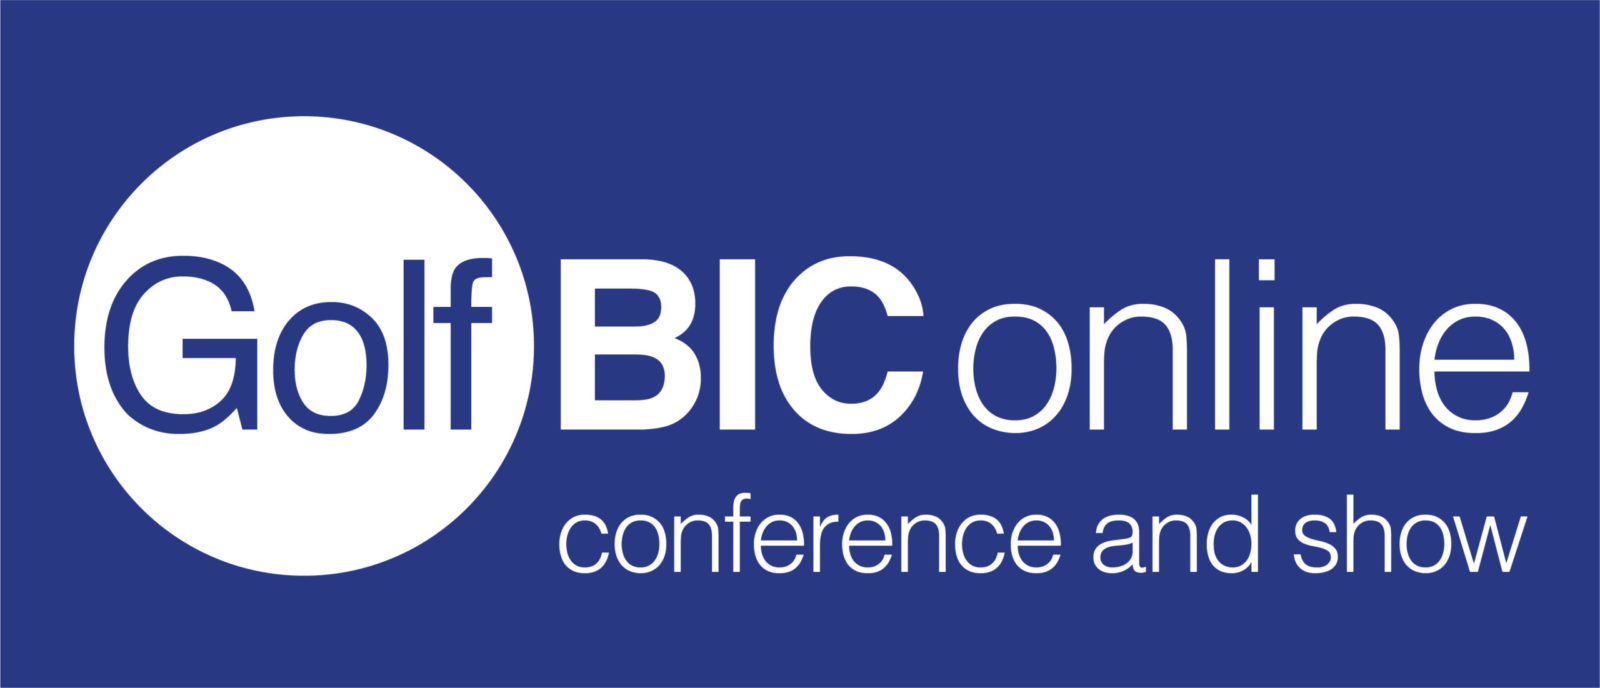 GolfBIC Online conference and show logo (002)